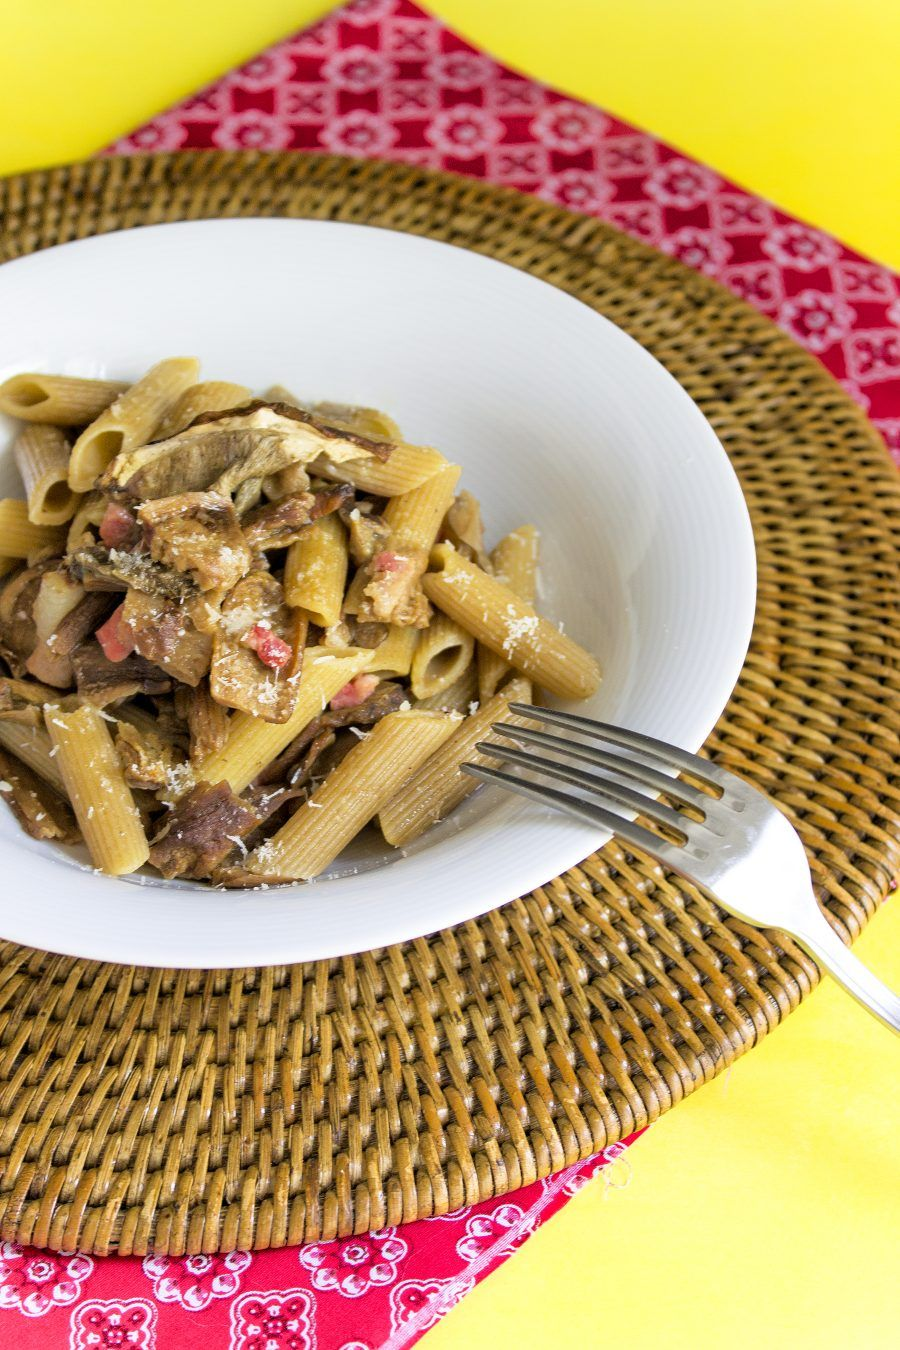 carbonara-ai-funghi-3-contemporaneo-food